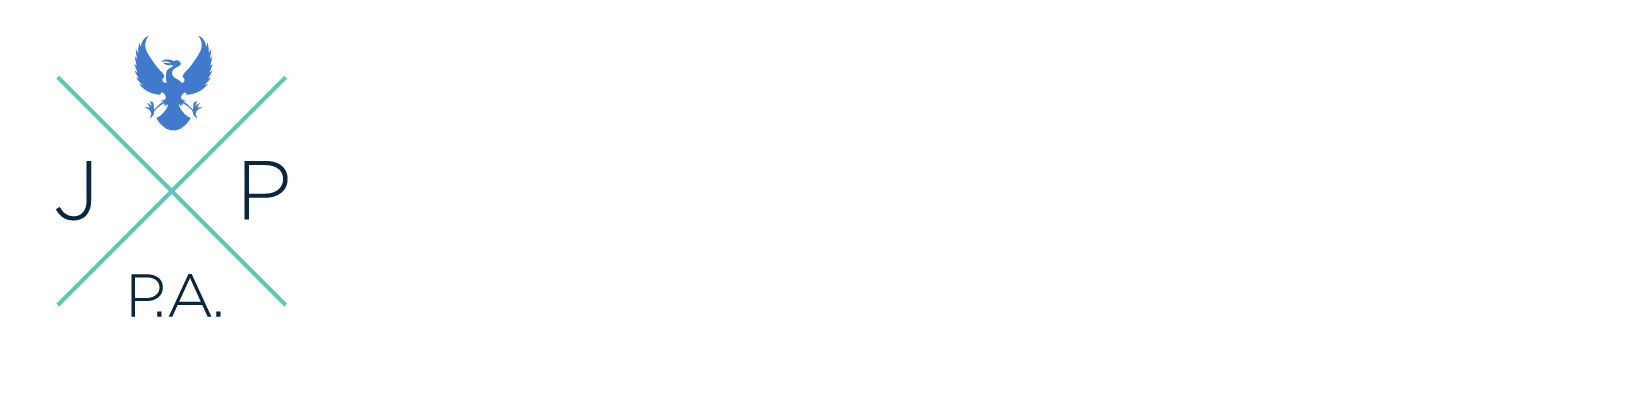 Law office of Jane Park logo white